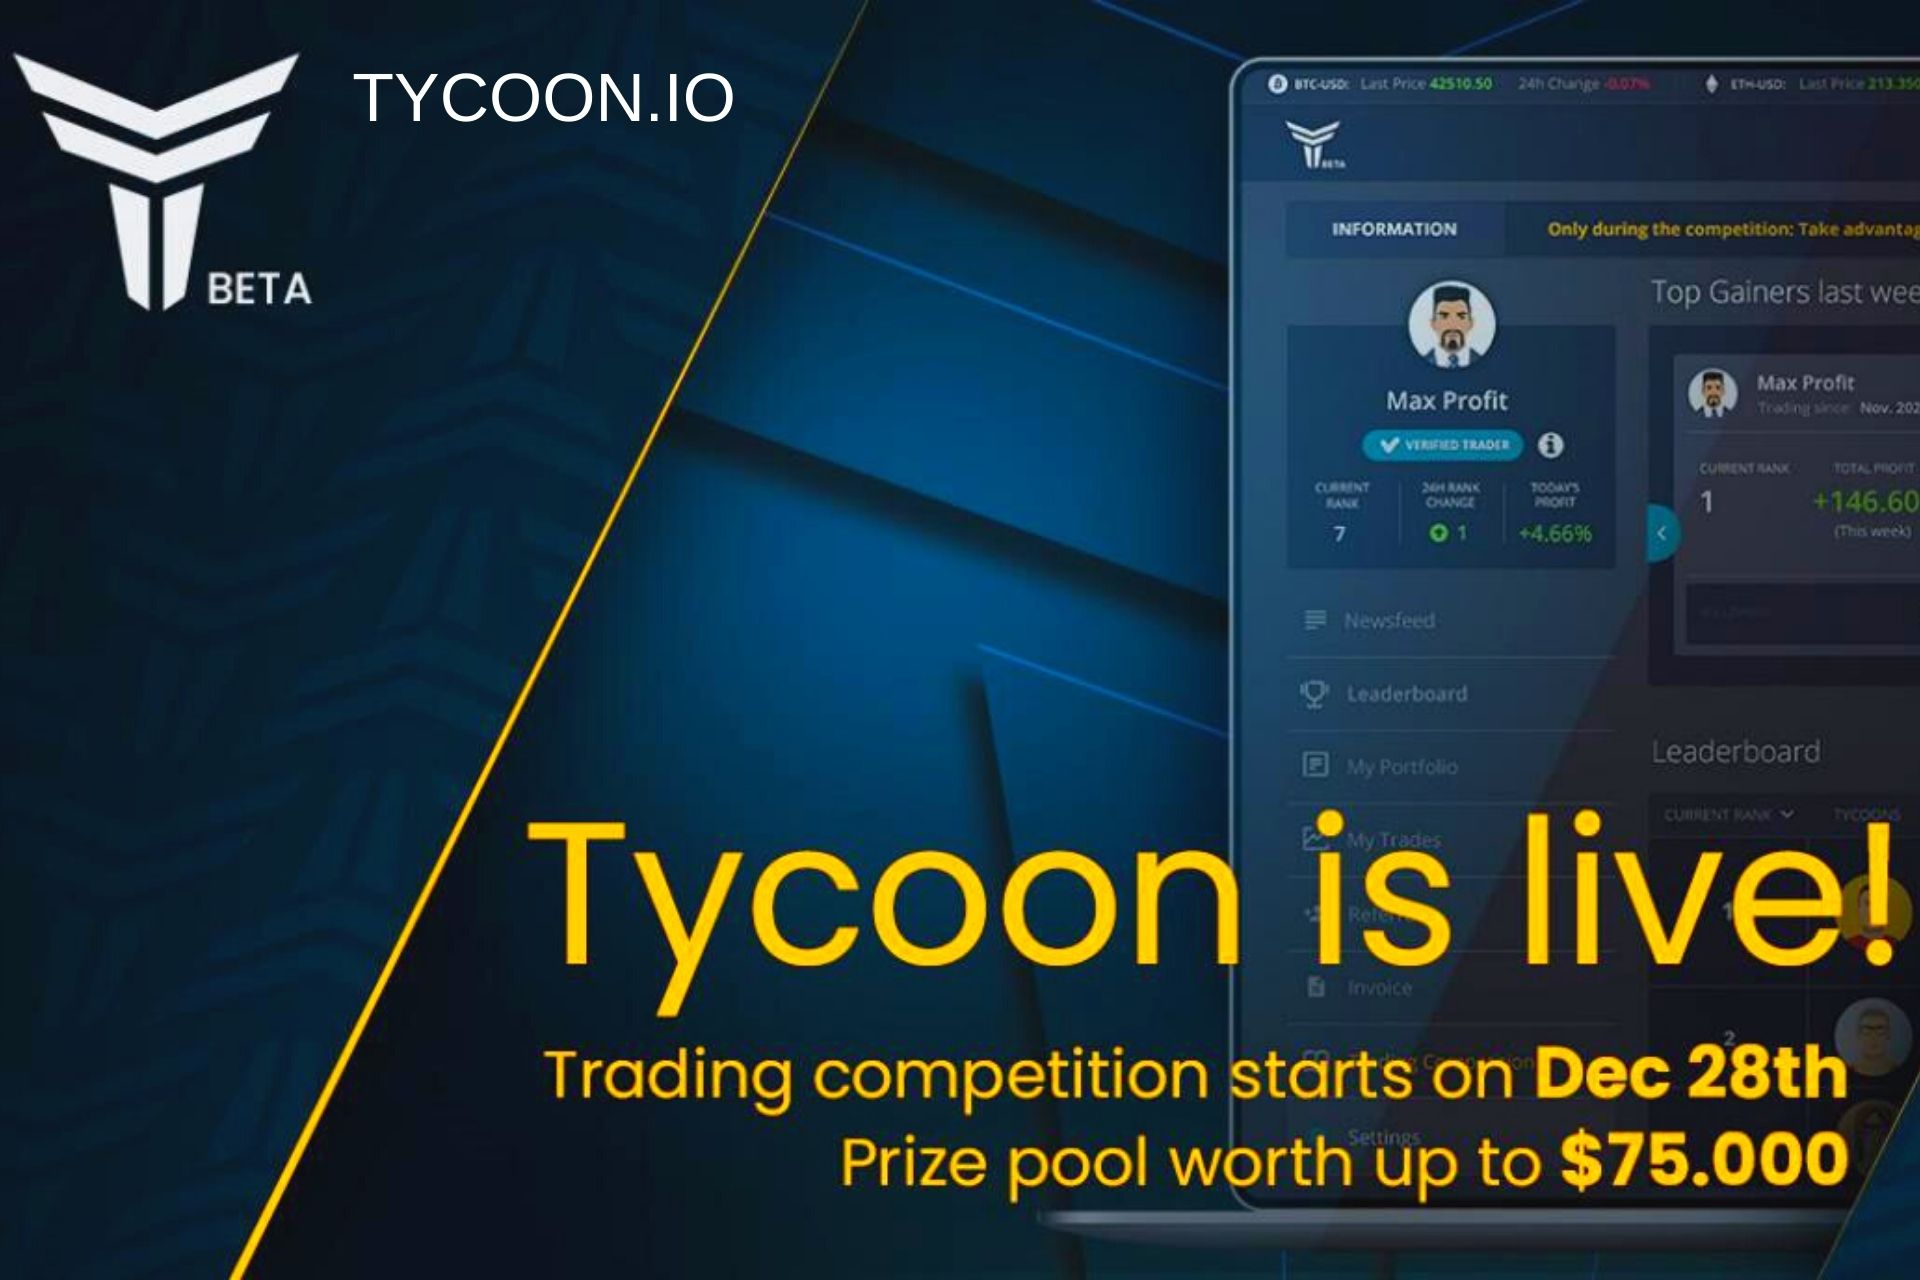 The Tycoon Social Trading Platform is Now Live!